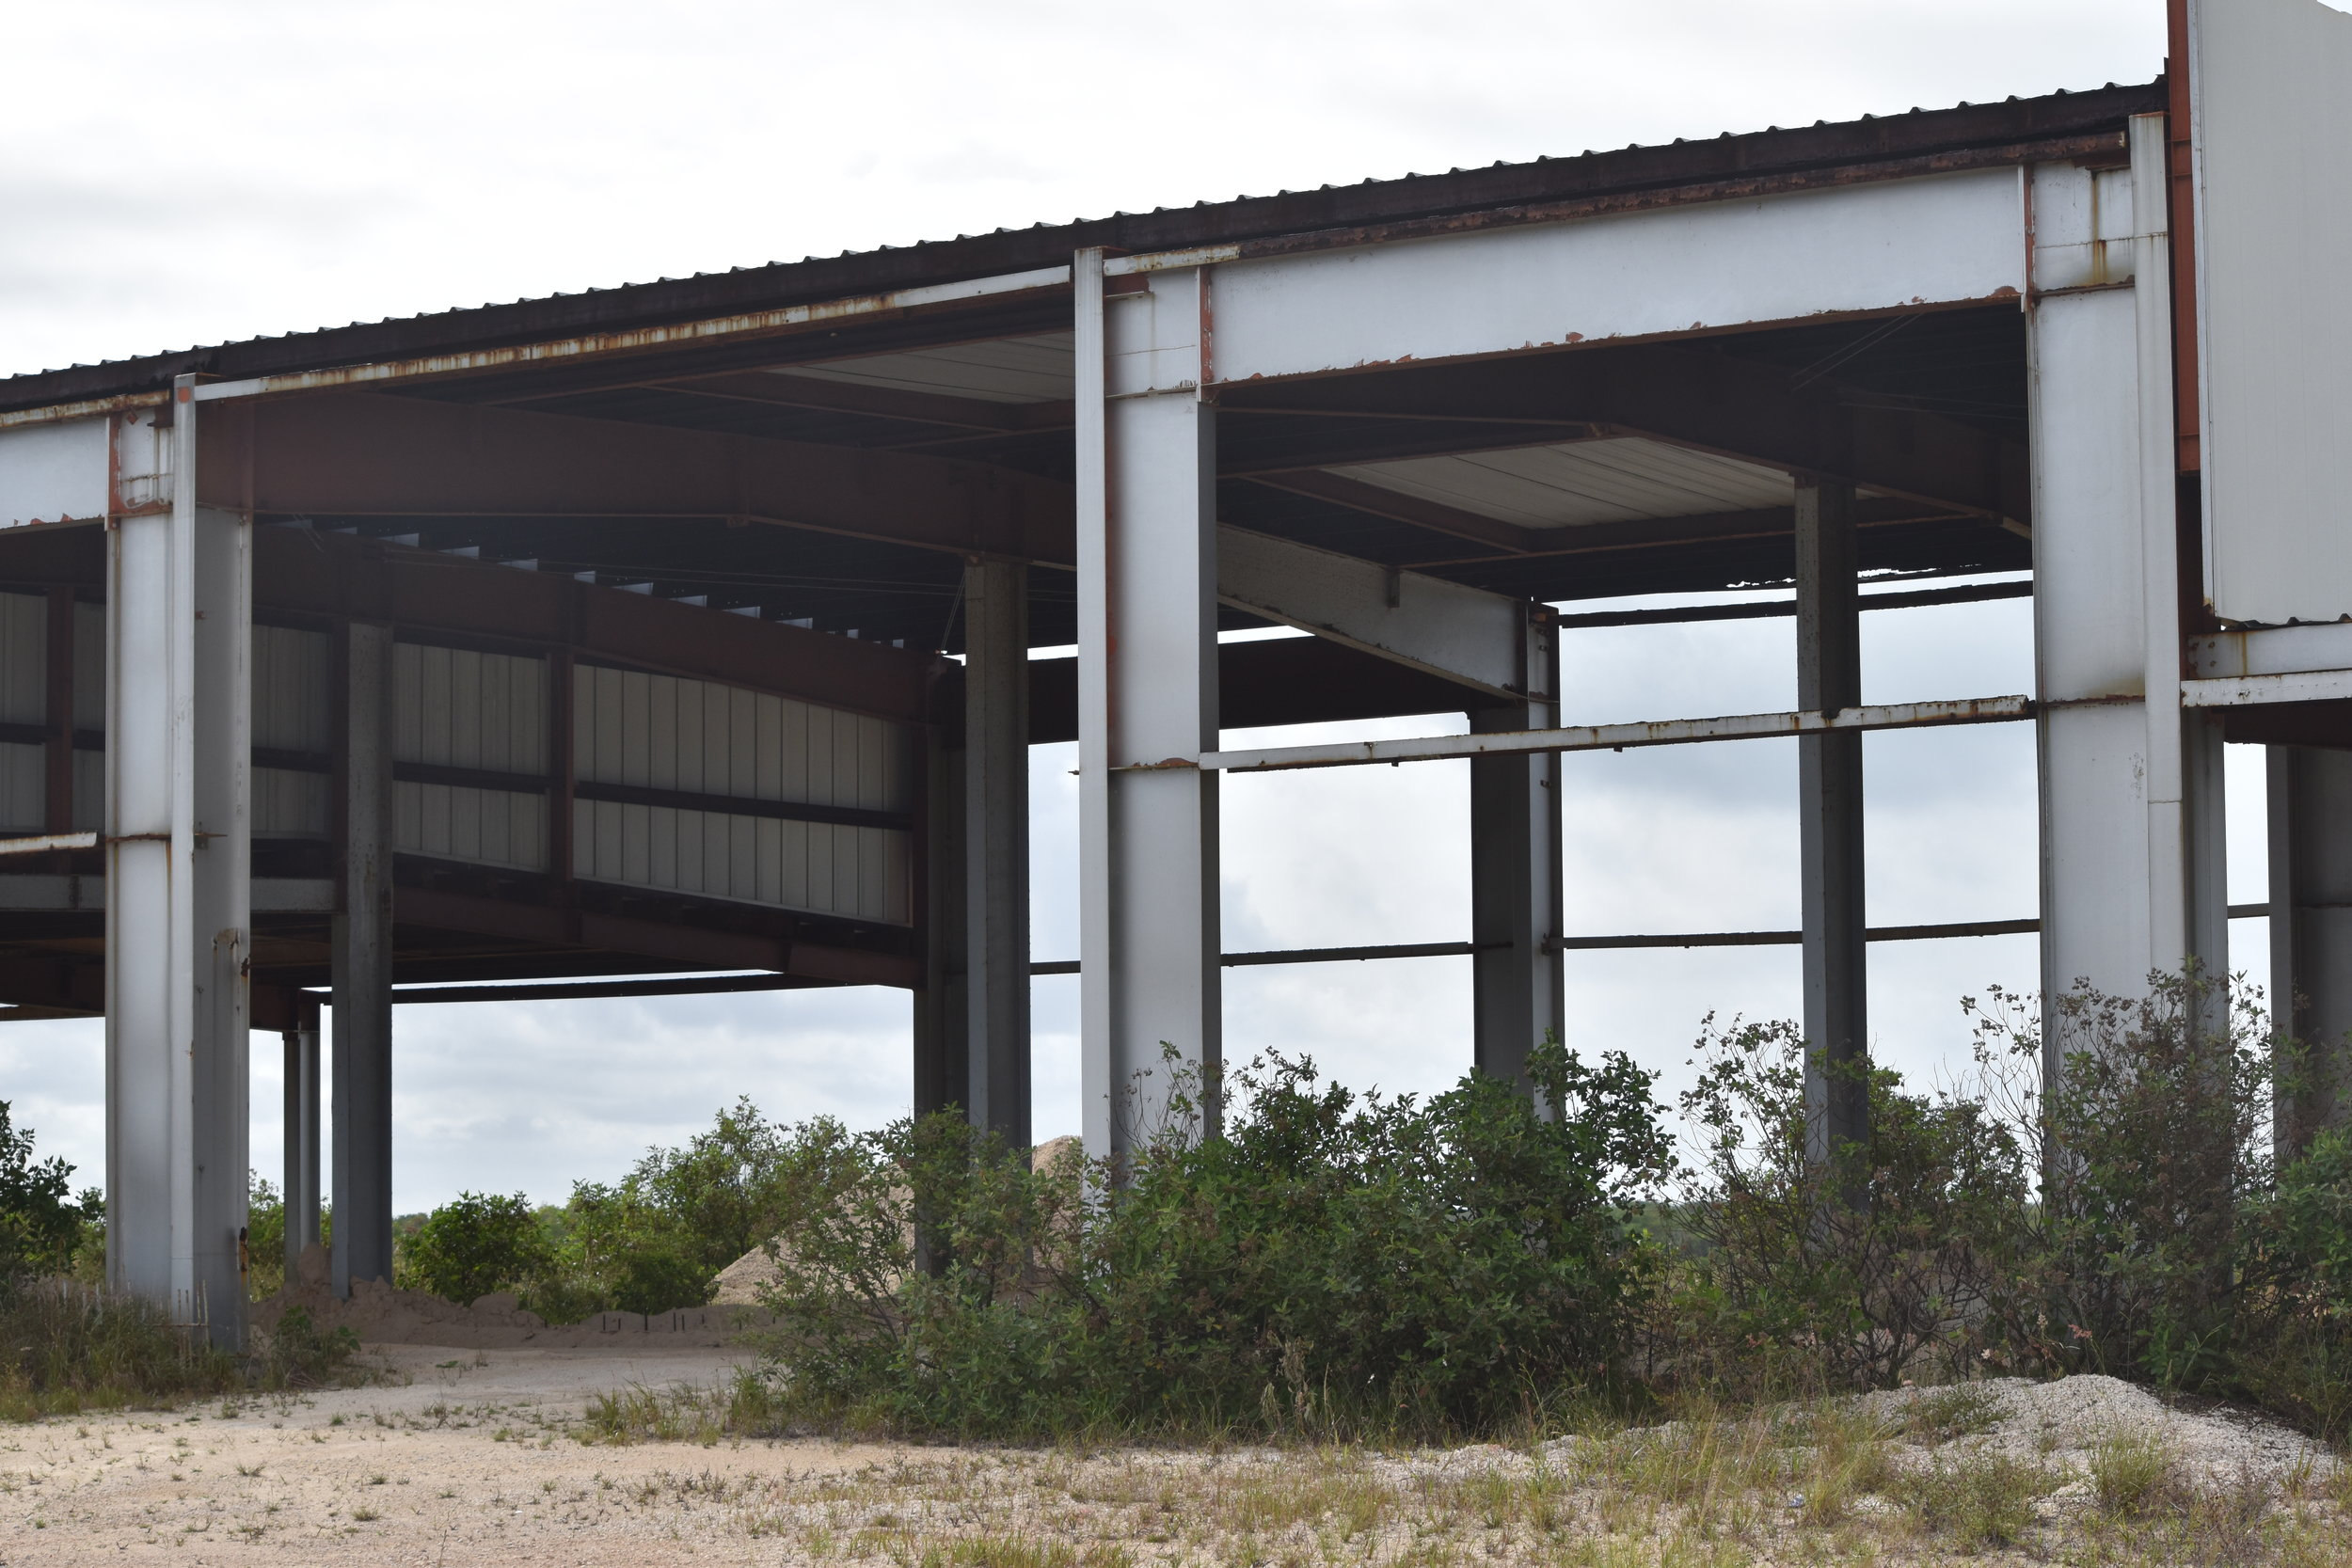 The 'New Airport', Mayaguana. The construction stands in ruins.